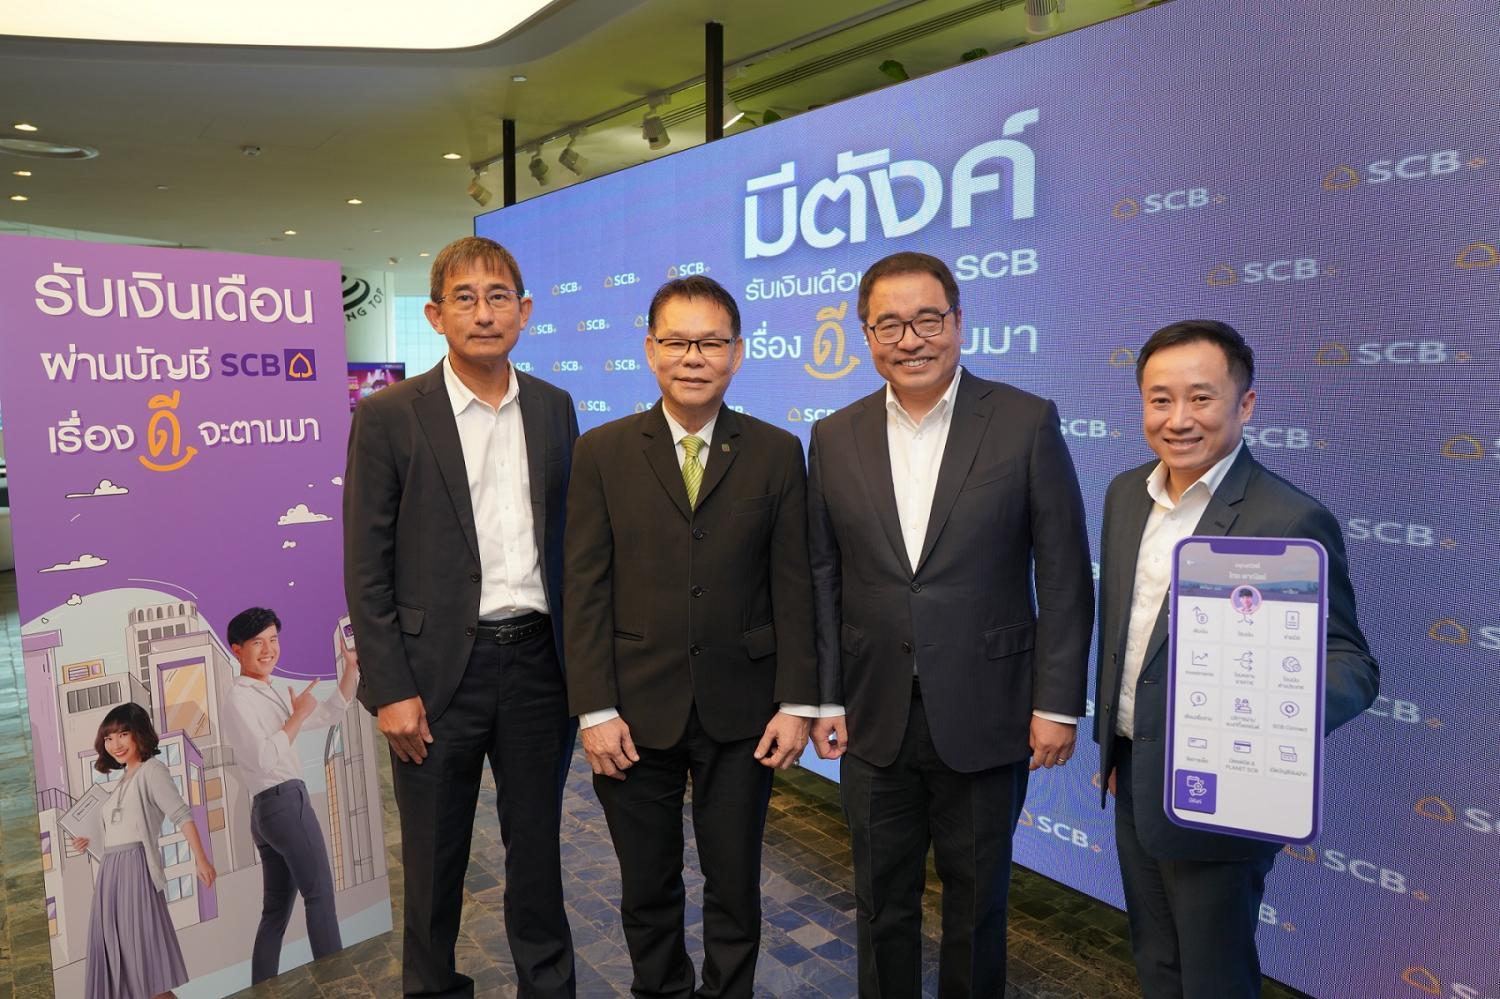 SCB co-president Orapong Thien-Ngern (far left) says pay cheque advances could help ease the country's household debt.